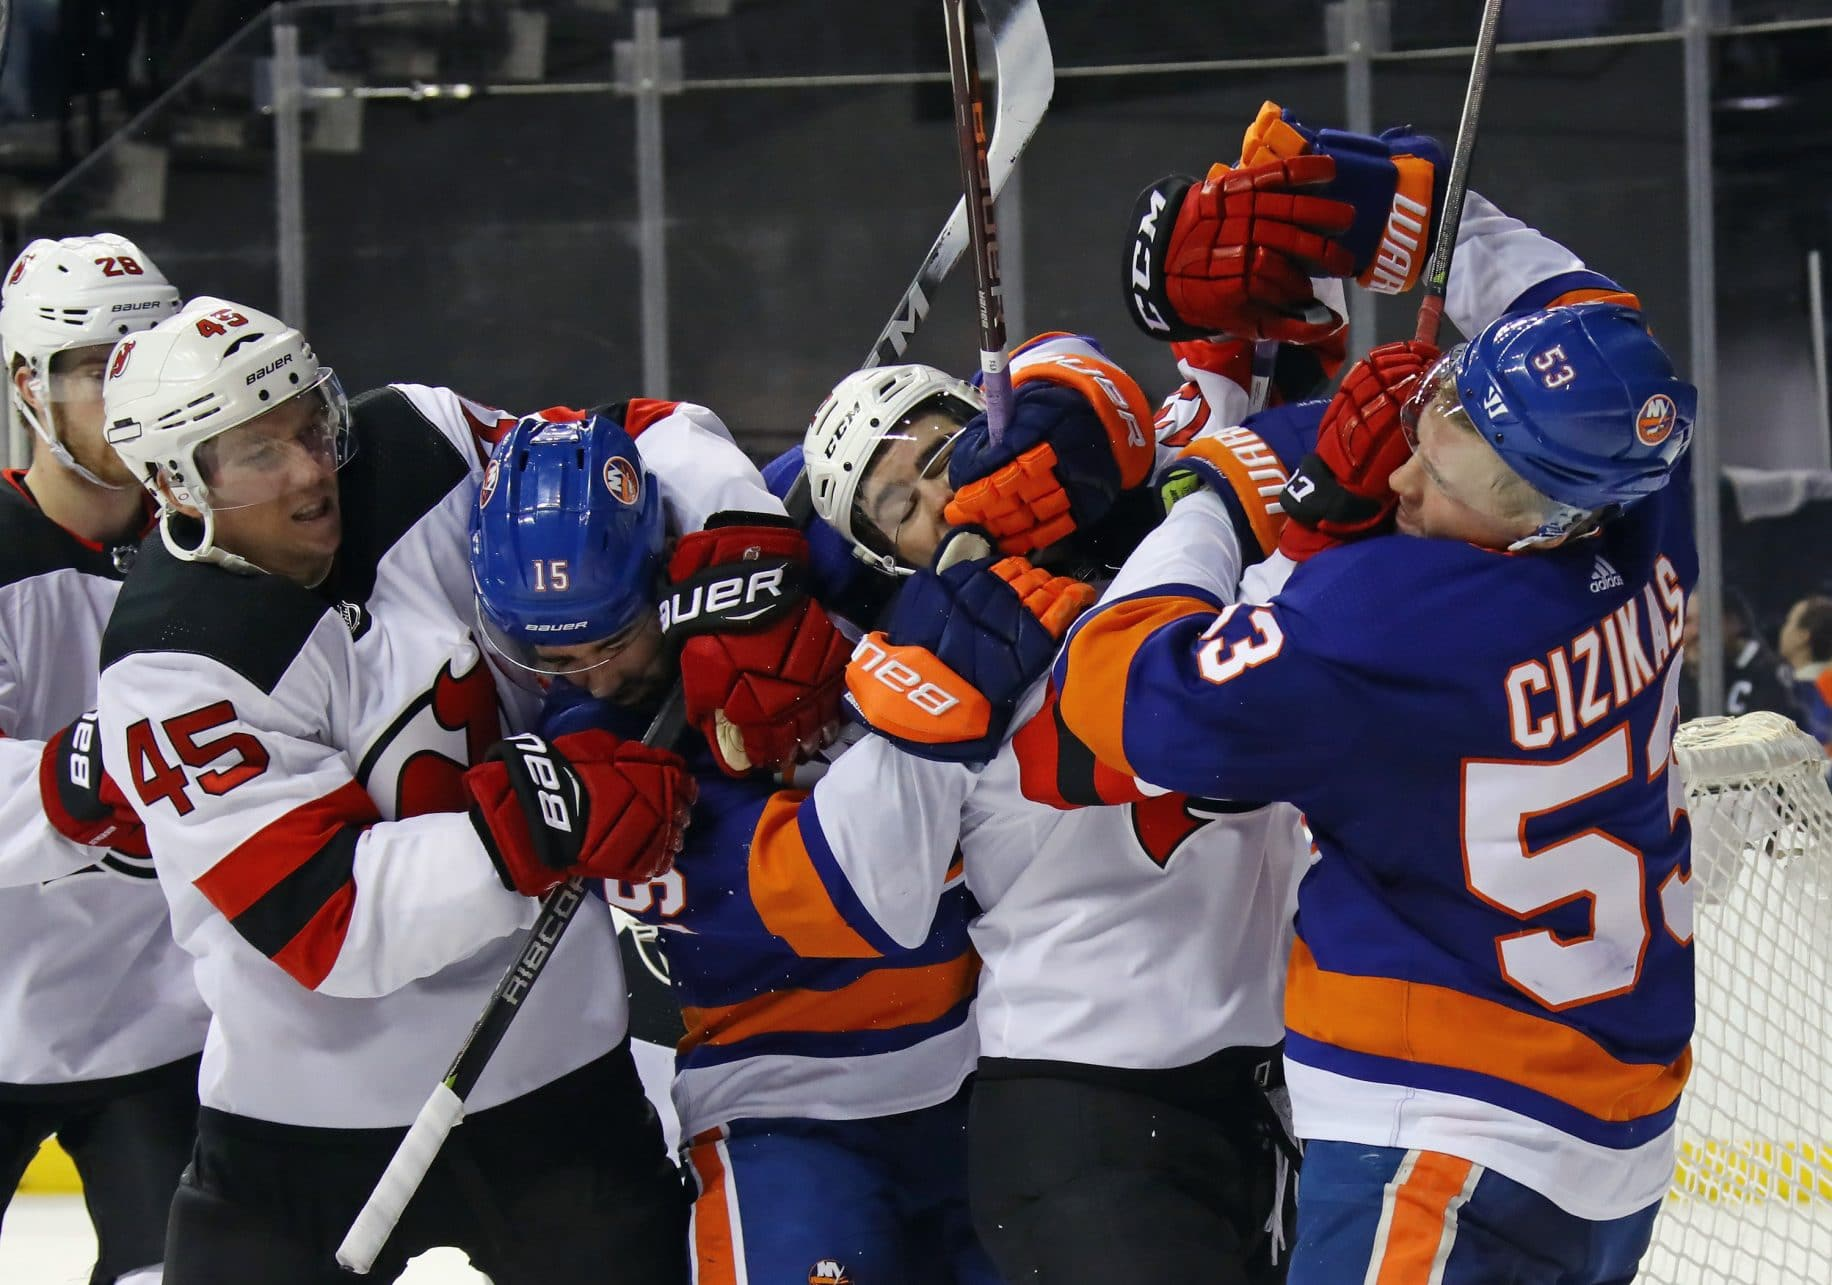 Gettyimages-902291086-new-jersey-devils-dish-1-16-18-devils-searching-for-win-at-islanders